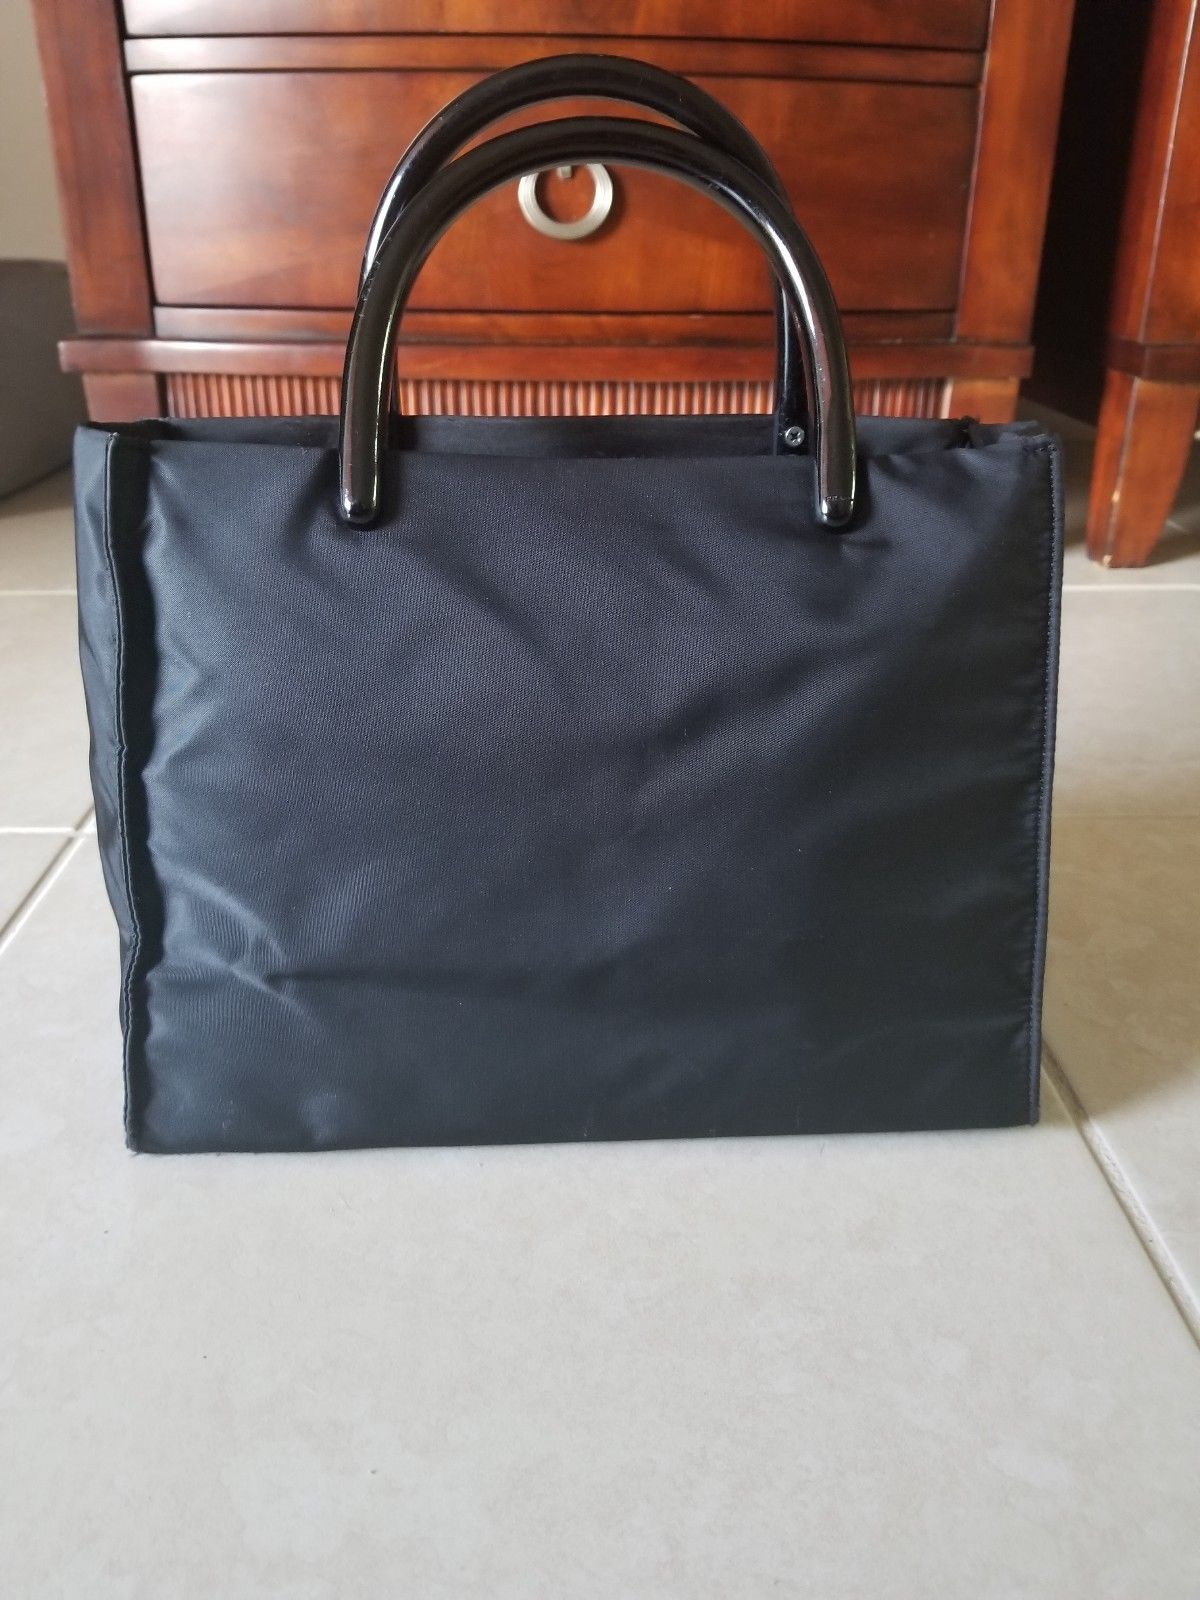 c4991584f7ab ... reduced prada black nylon tote handbag double lucite handles side logo  40.0 be5c8 37b43